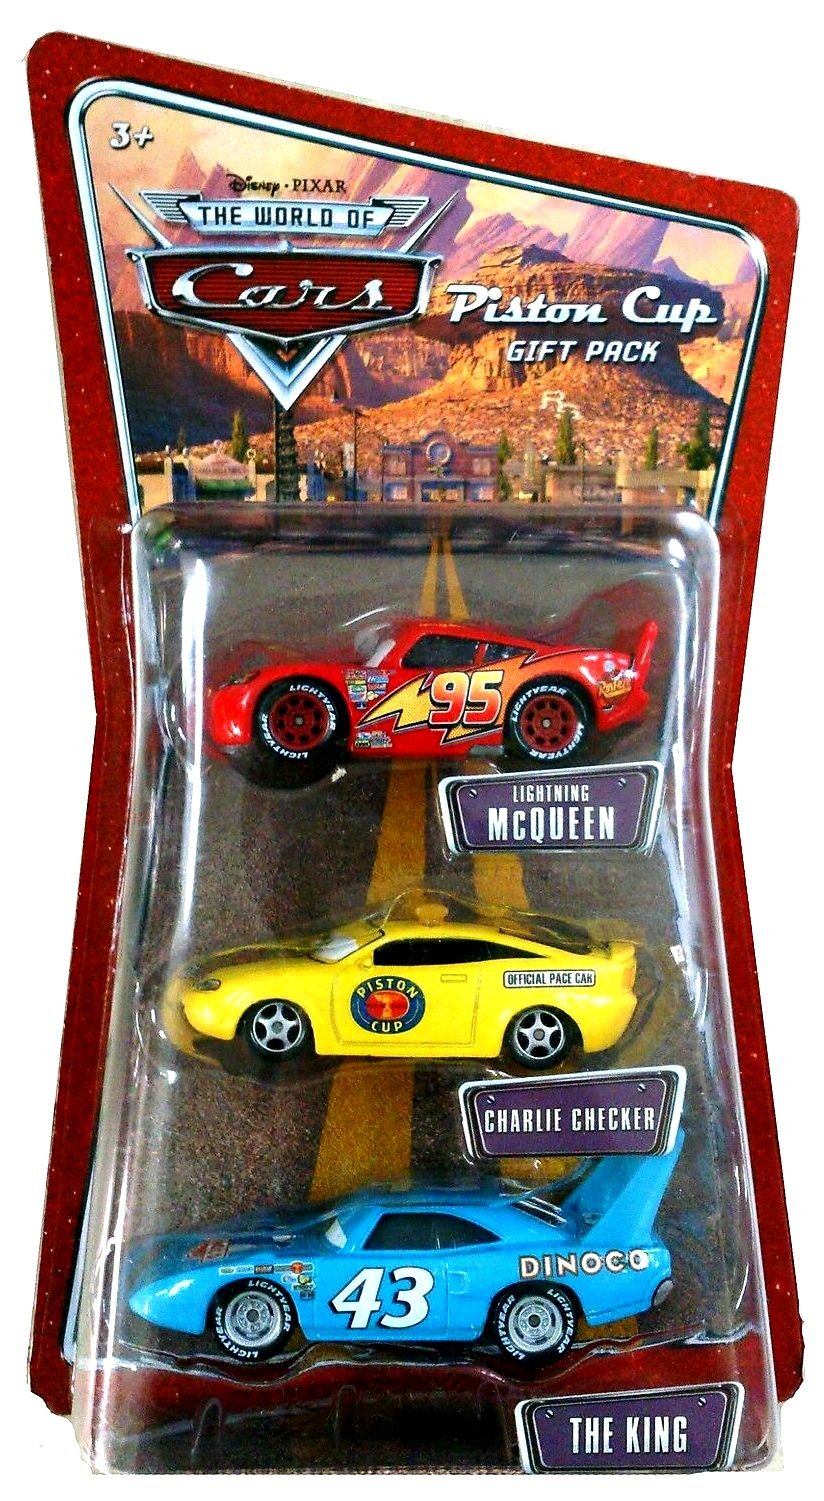 Piston Cup 3 Pc Gift Pack W Mcqueen Charlie Checker The King The World Of Cars Series 3 Disney Pixar Cars Movie Collectible Series Rare Vintage 2008 Now